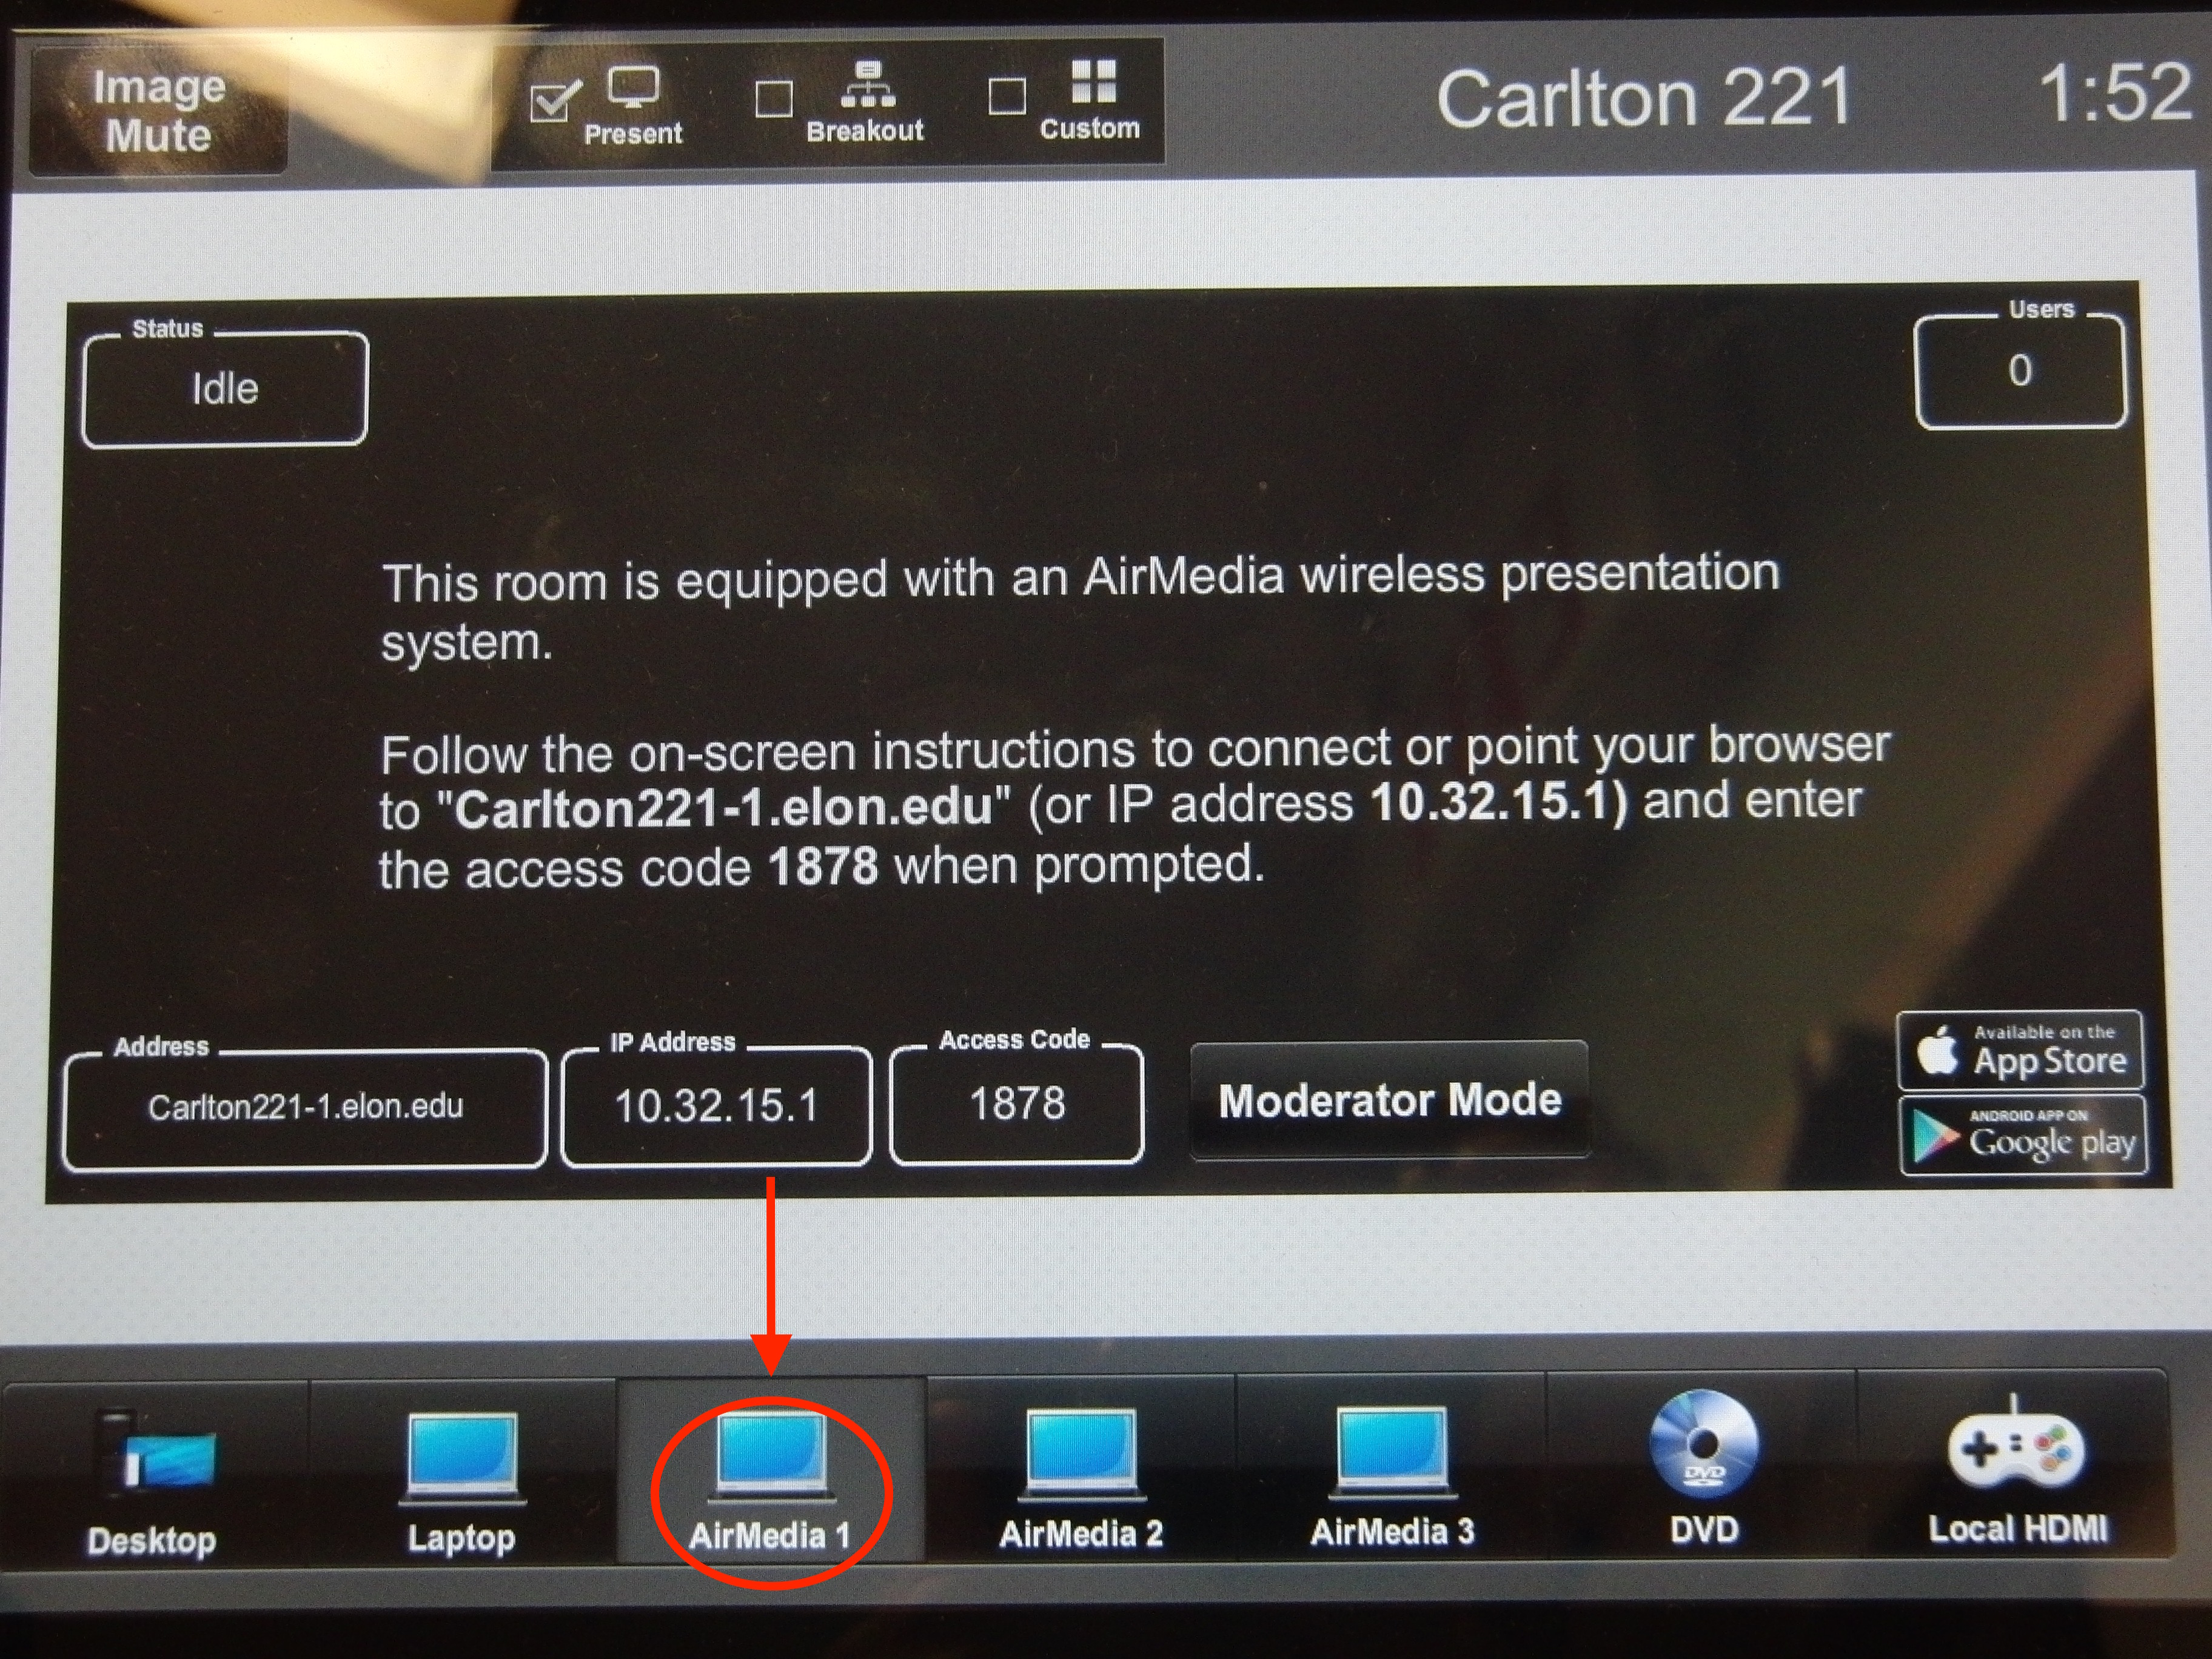 Photo of crestron control touch panel highlighting AirMedia 1